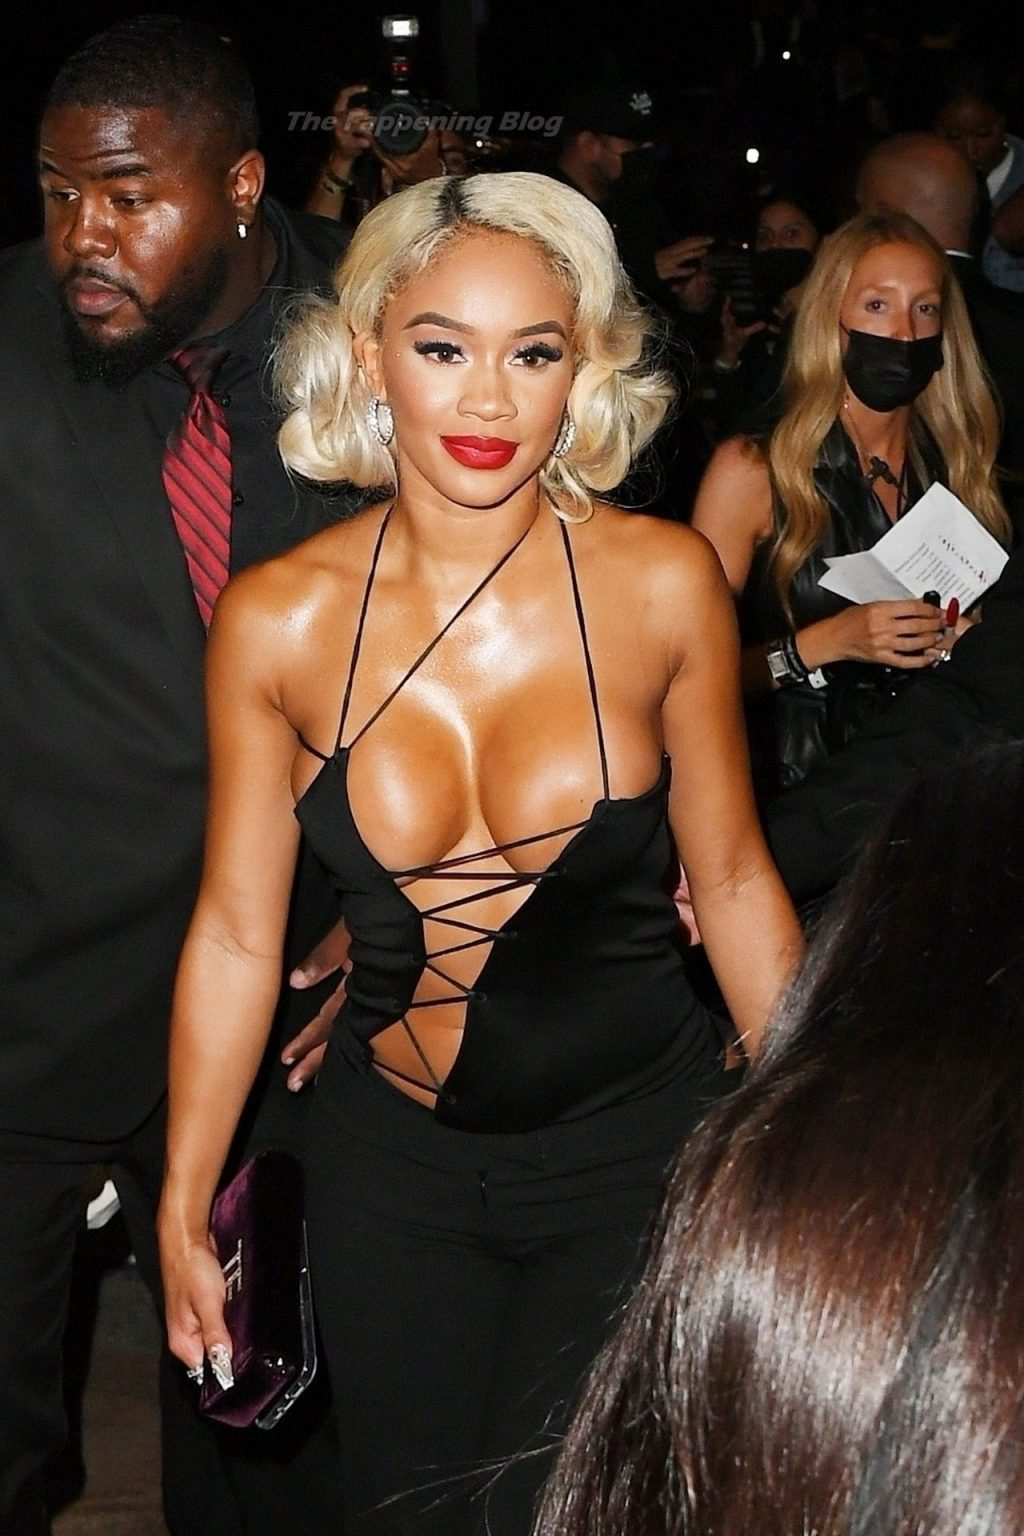 Saweetie Shows Off Her Boobs in a Lace-Up Barely There Blouse at the Tom Ford Fashion Show (37 Photos)